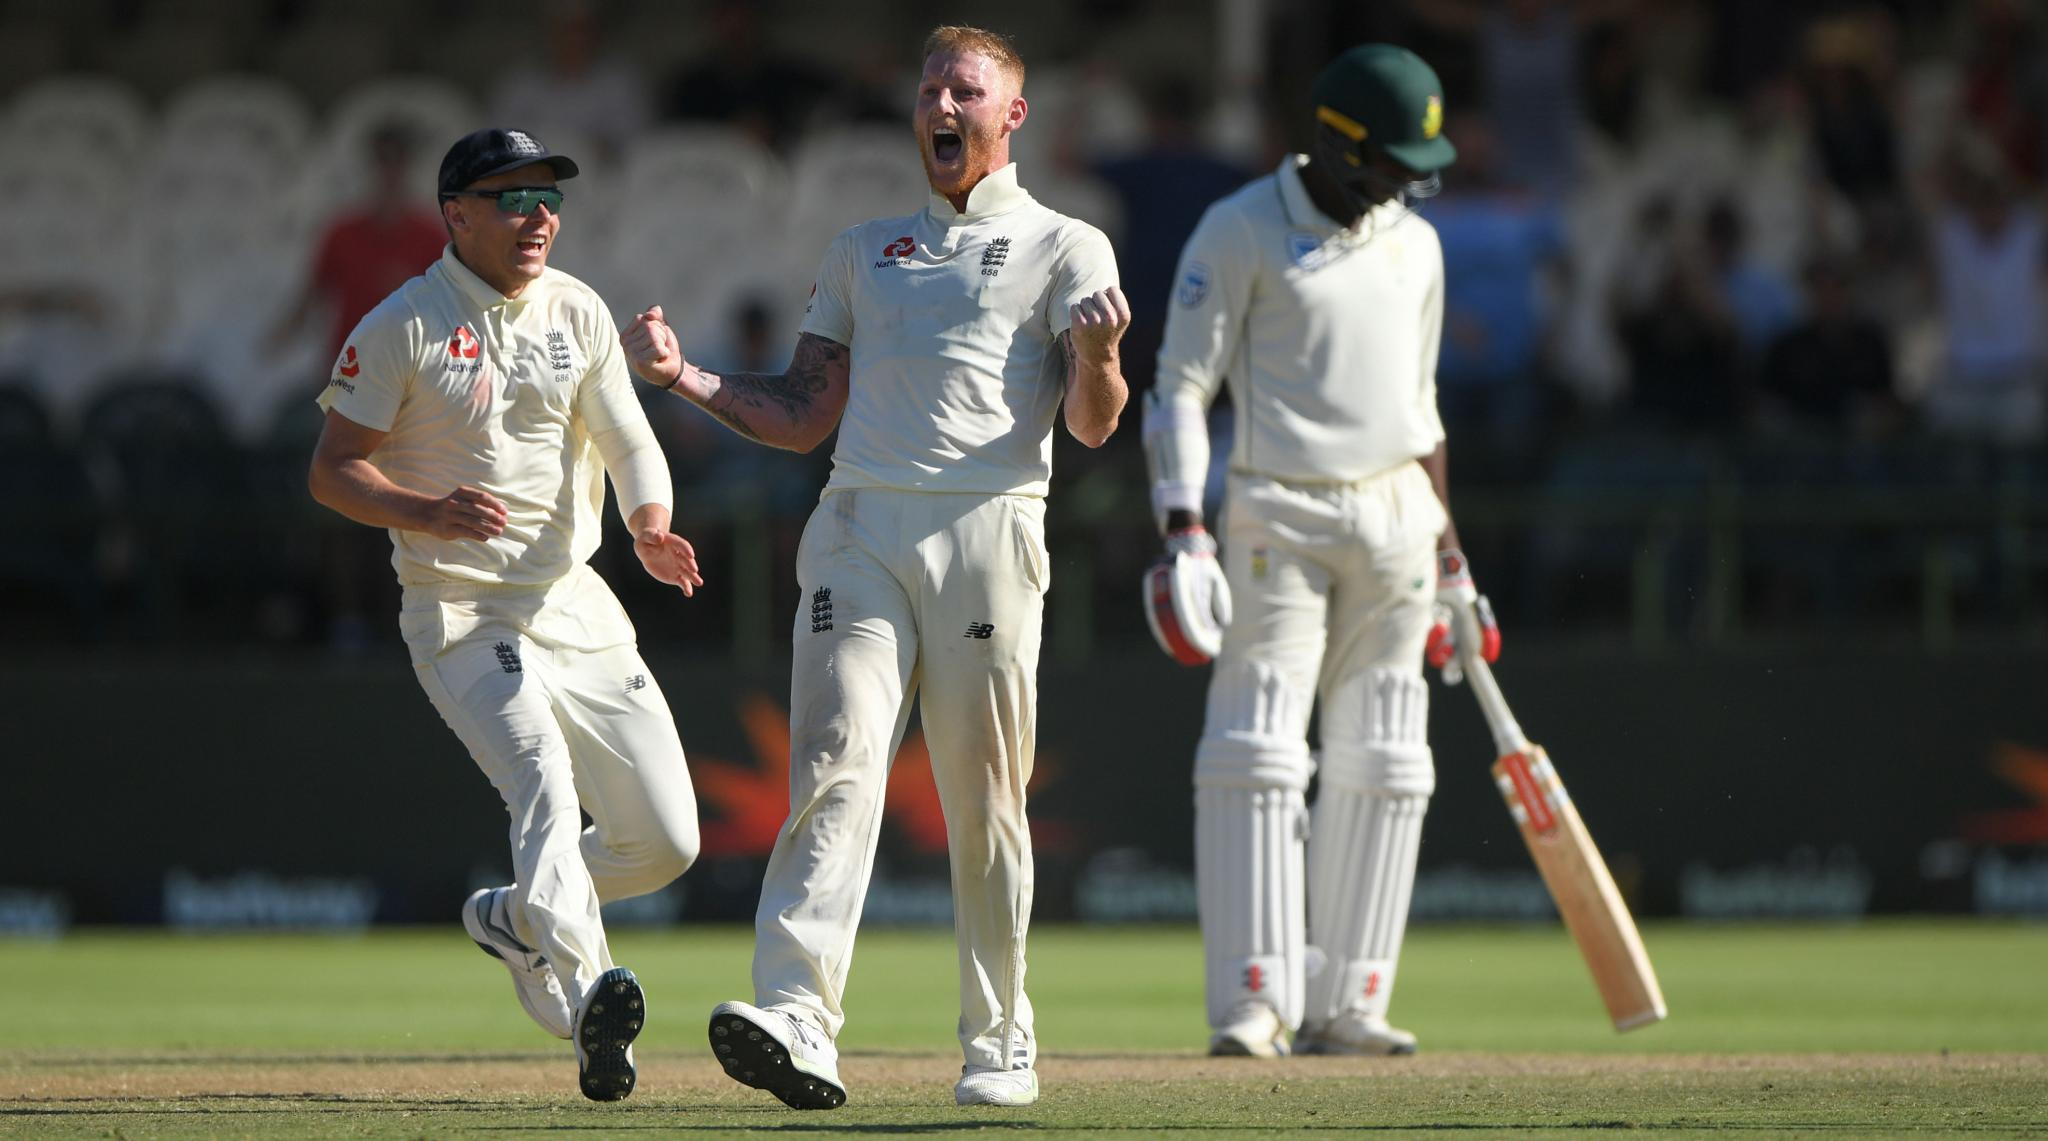 South Africa vs England, 2nd Test 2019-20 Match Result: Ben Stokes Shines in ENG's Win Over Proteas